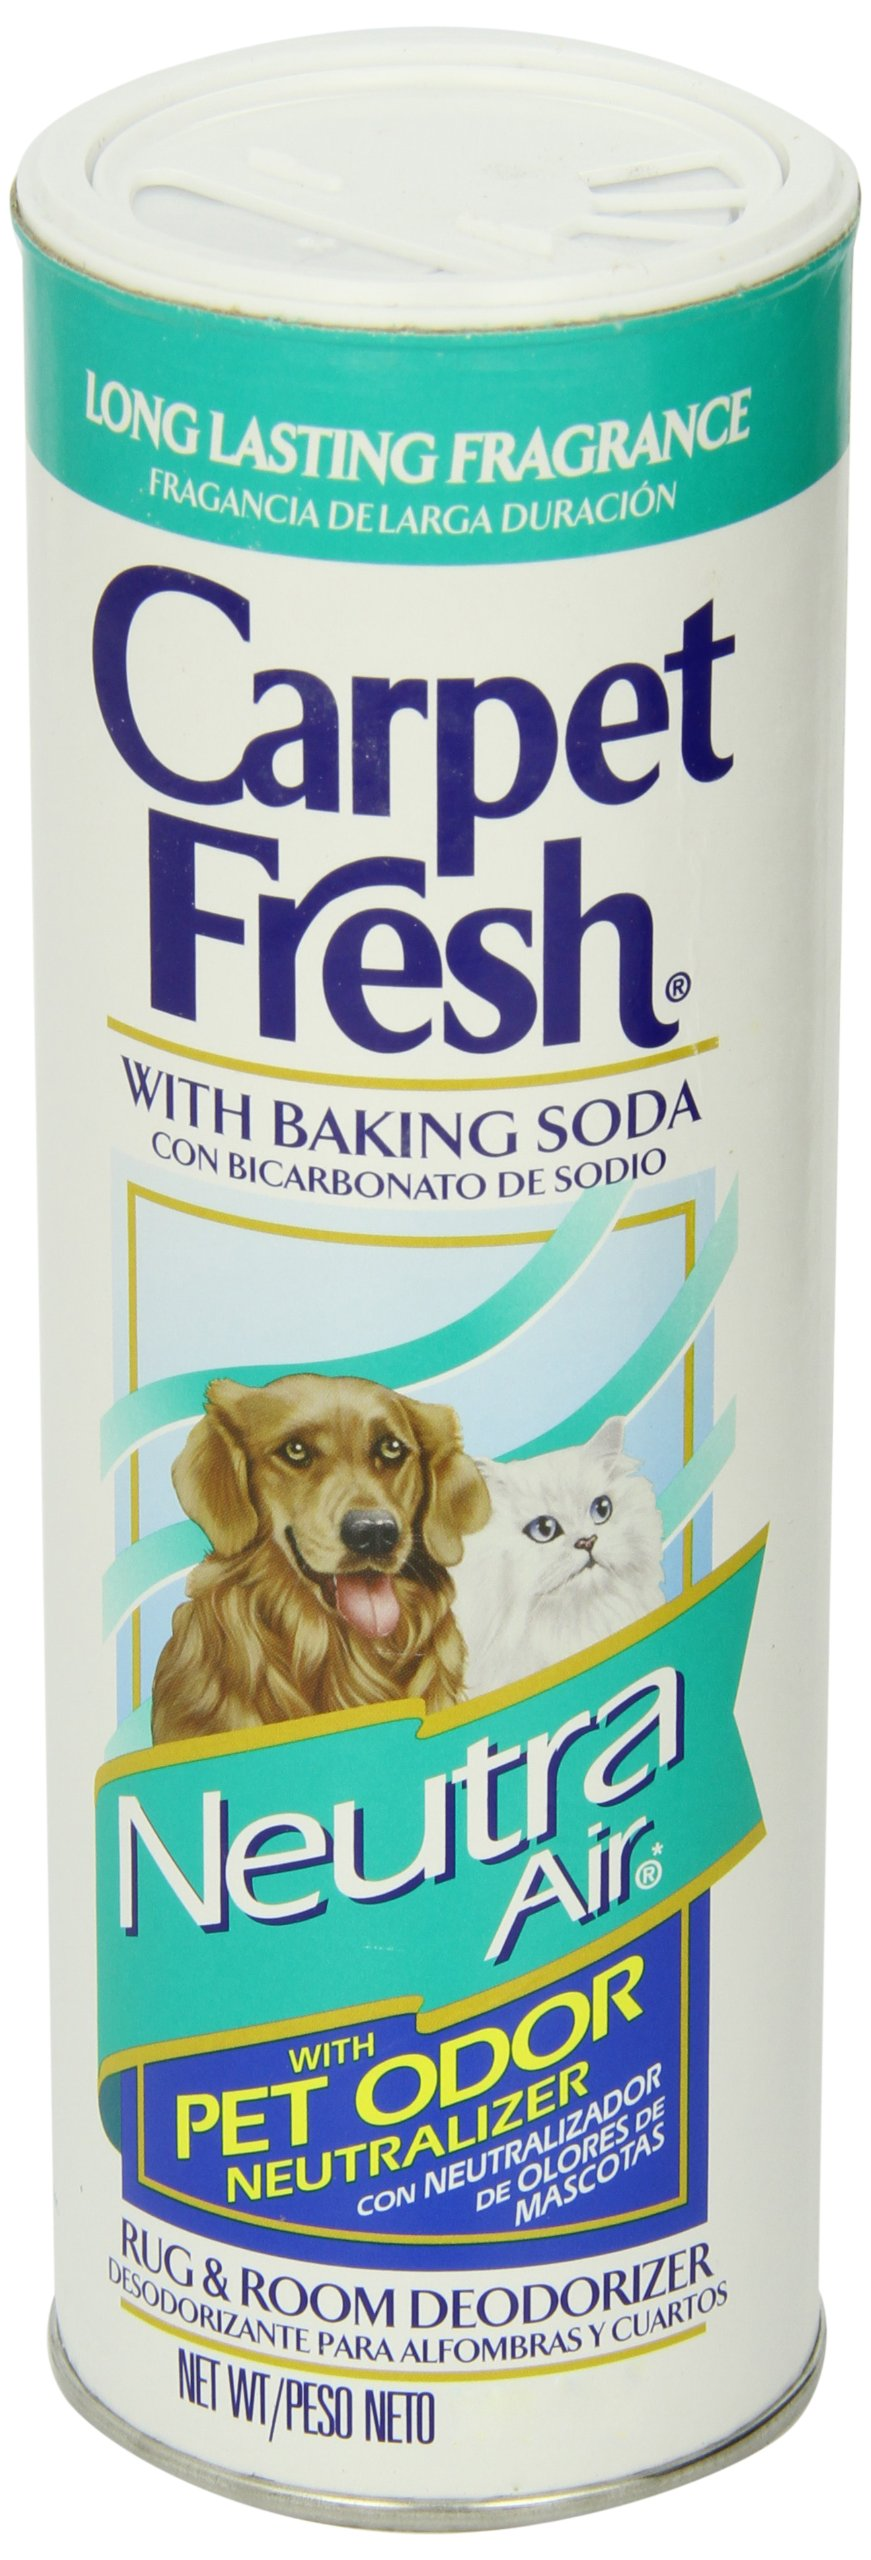 Carpet Fresh Rug and Room Deodorizer with Baking Soda and Pet Odor Neutralizer, Neutra Air Fragrance, 14 OZ [12 Pack] by Carpet Fresh